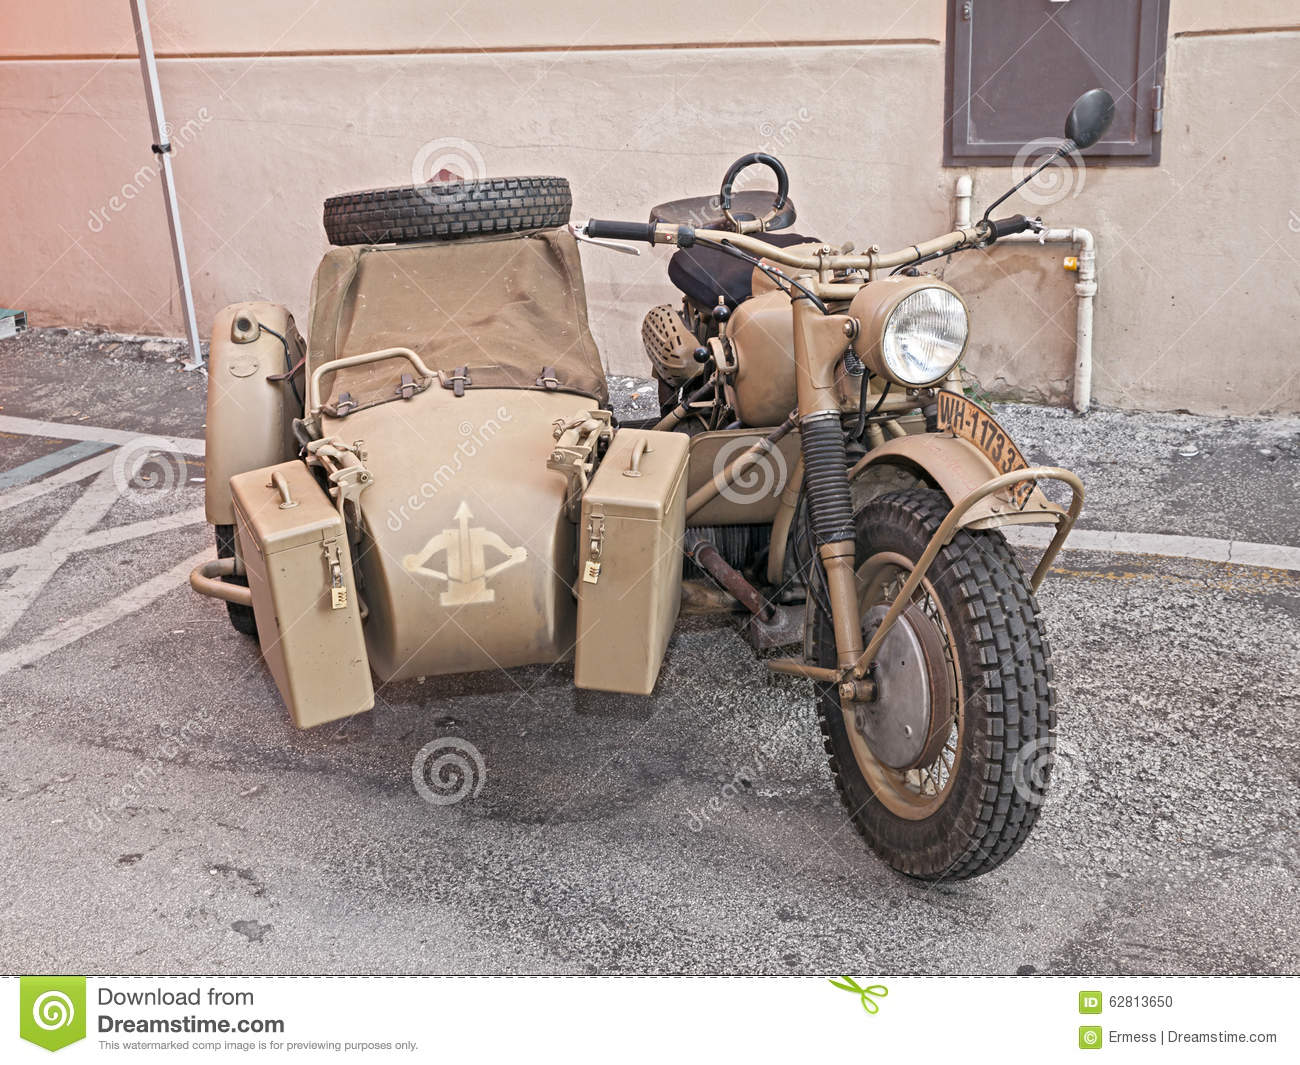 BMW R75 with sidecar images #146269